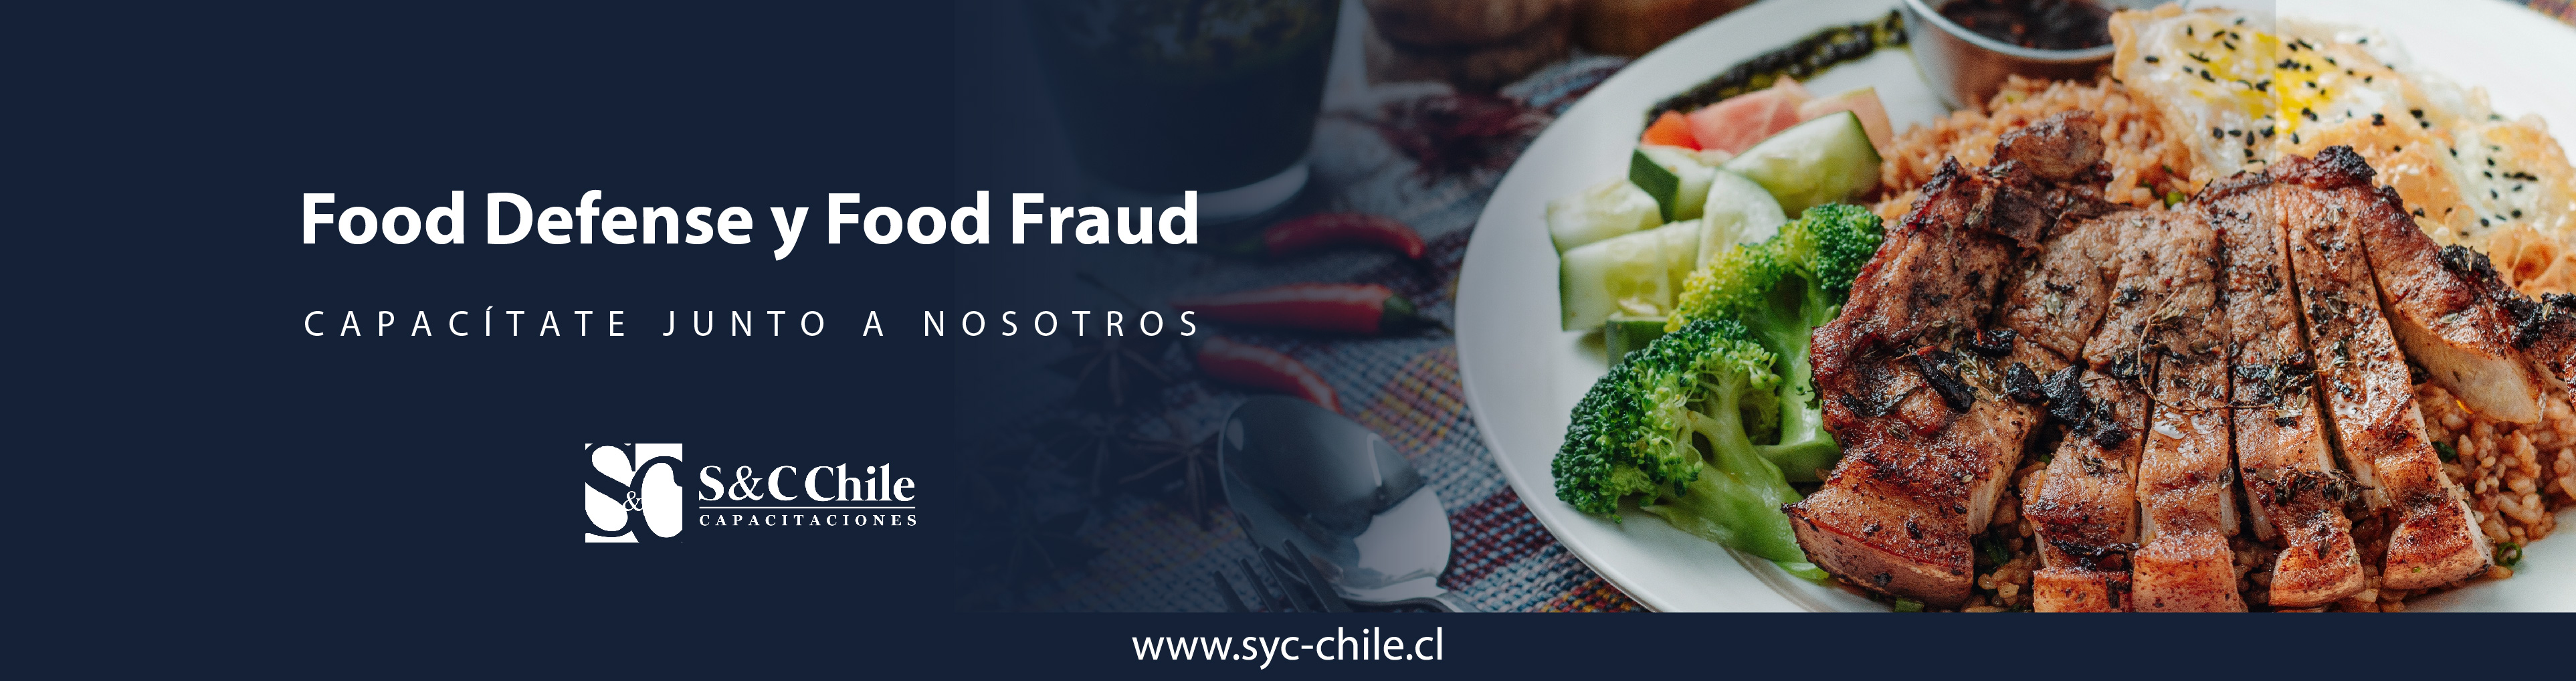 Course image for Food Defense 10-18.05.21 (CIAL ALIMENTOS)